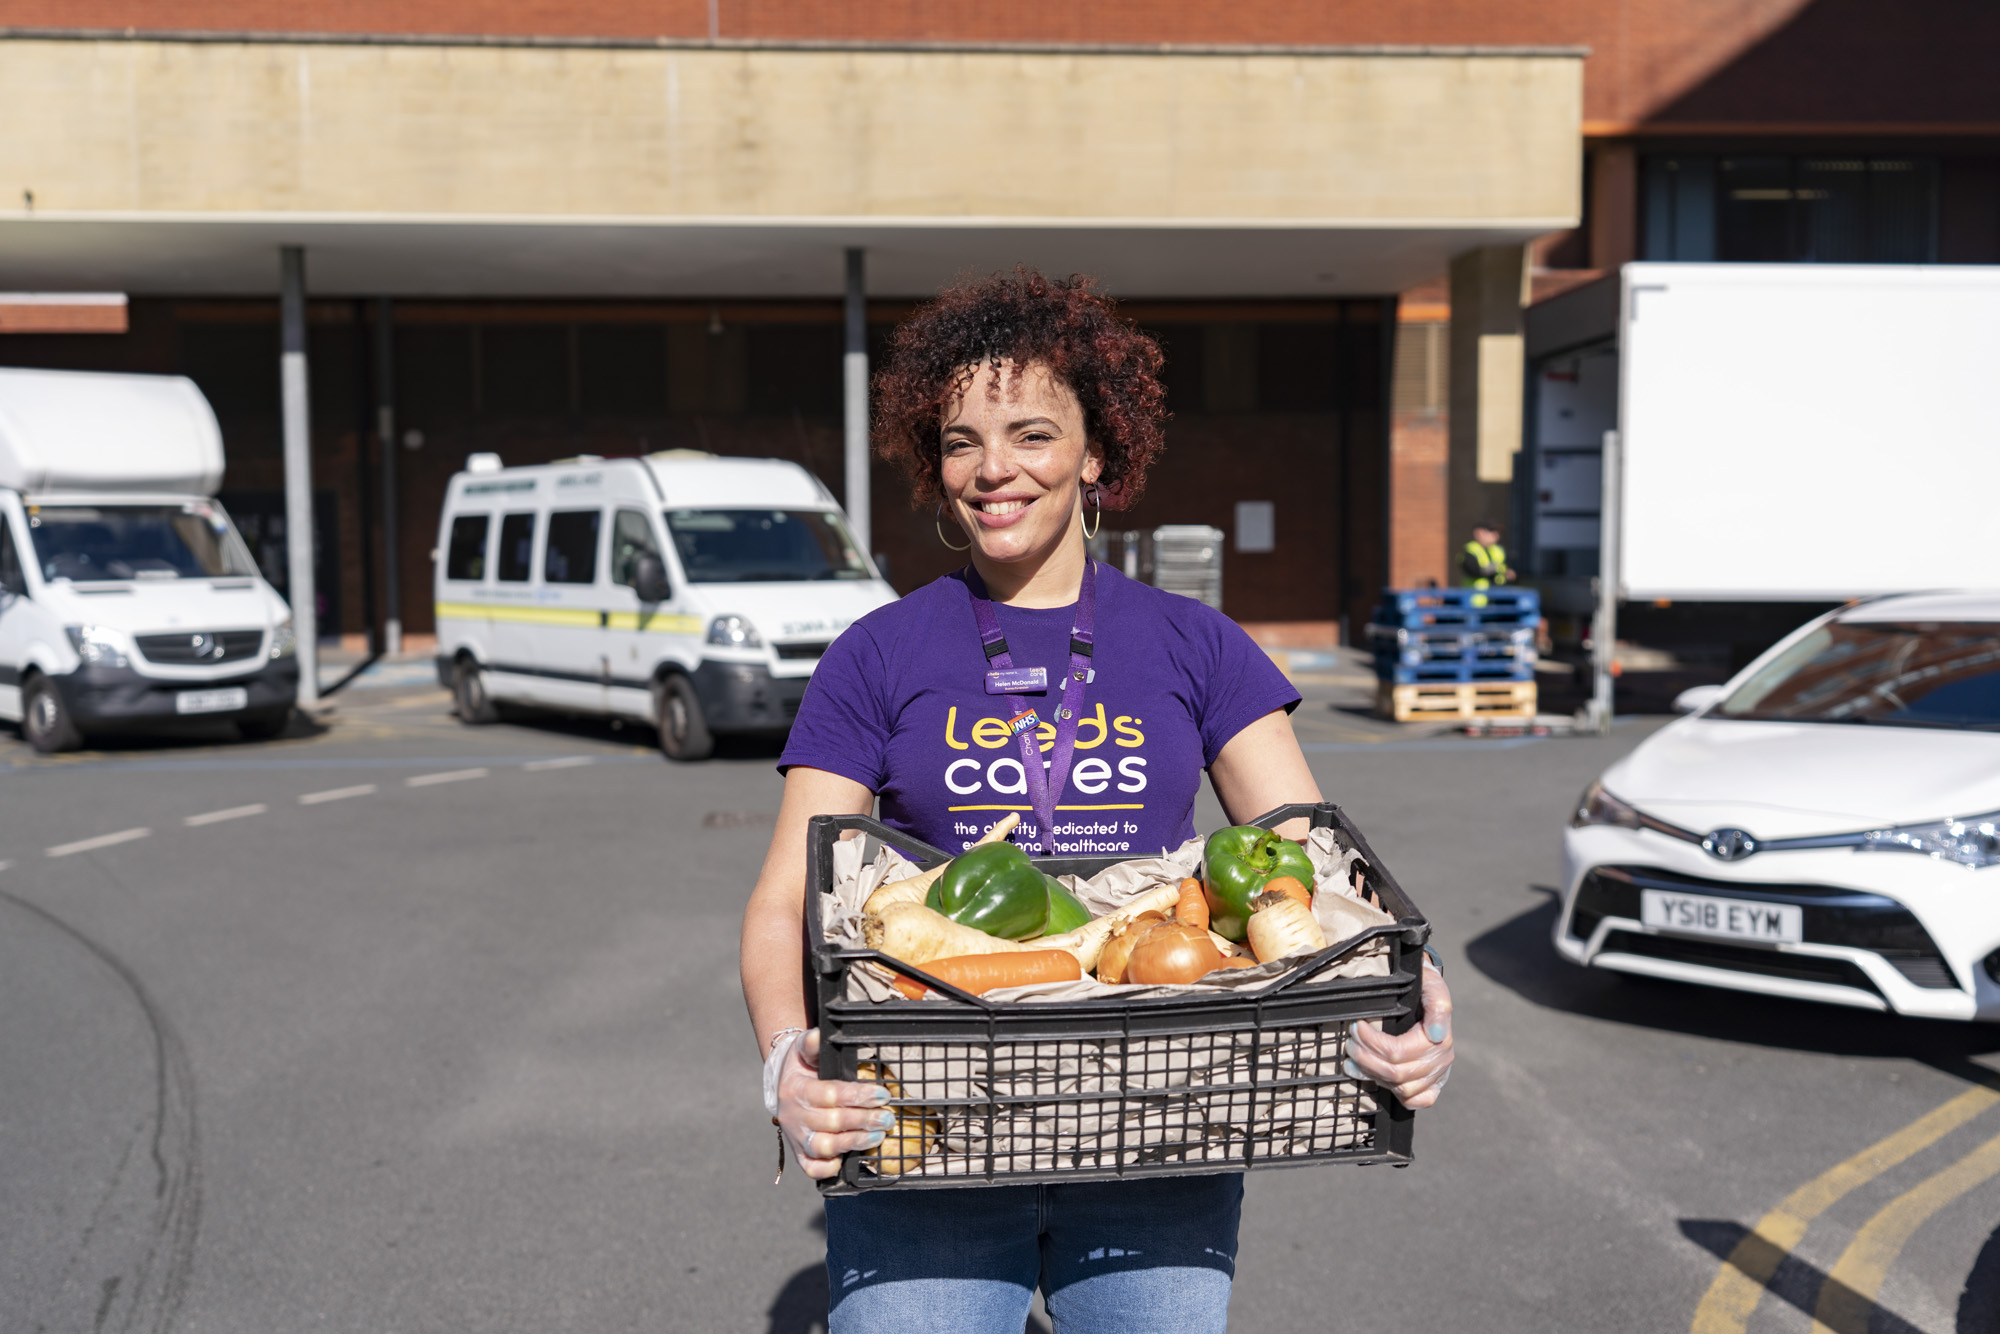 Helen Macdonald from Leeds Cares holds a package of fresh fruit and veg for NHS workers as part of the Feed the Frontline initiative